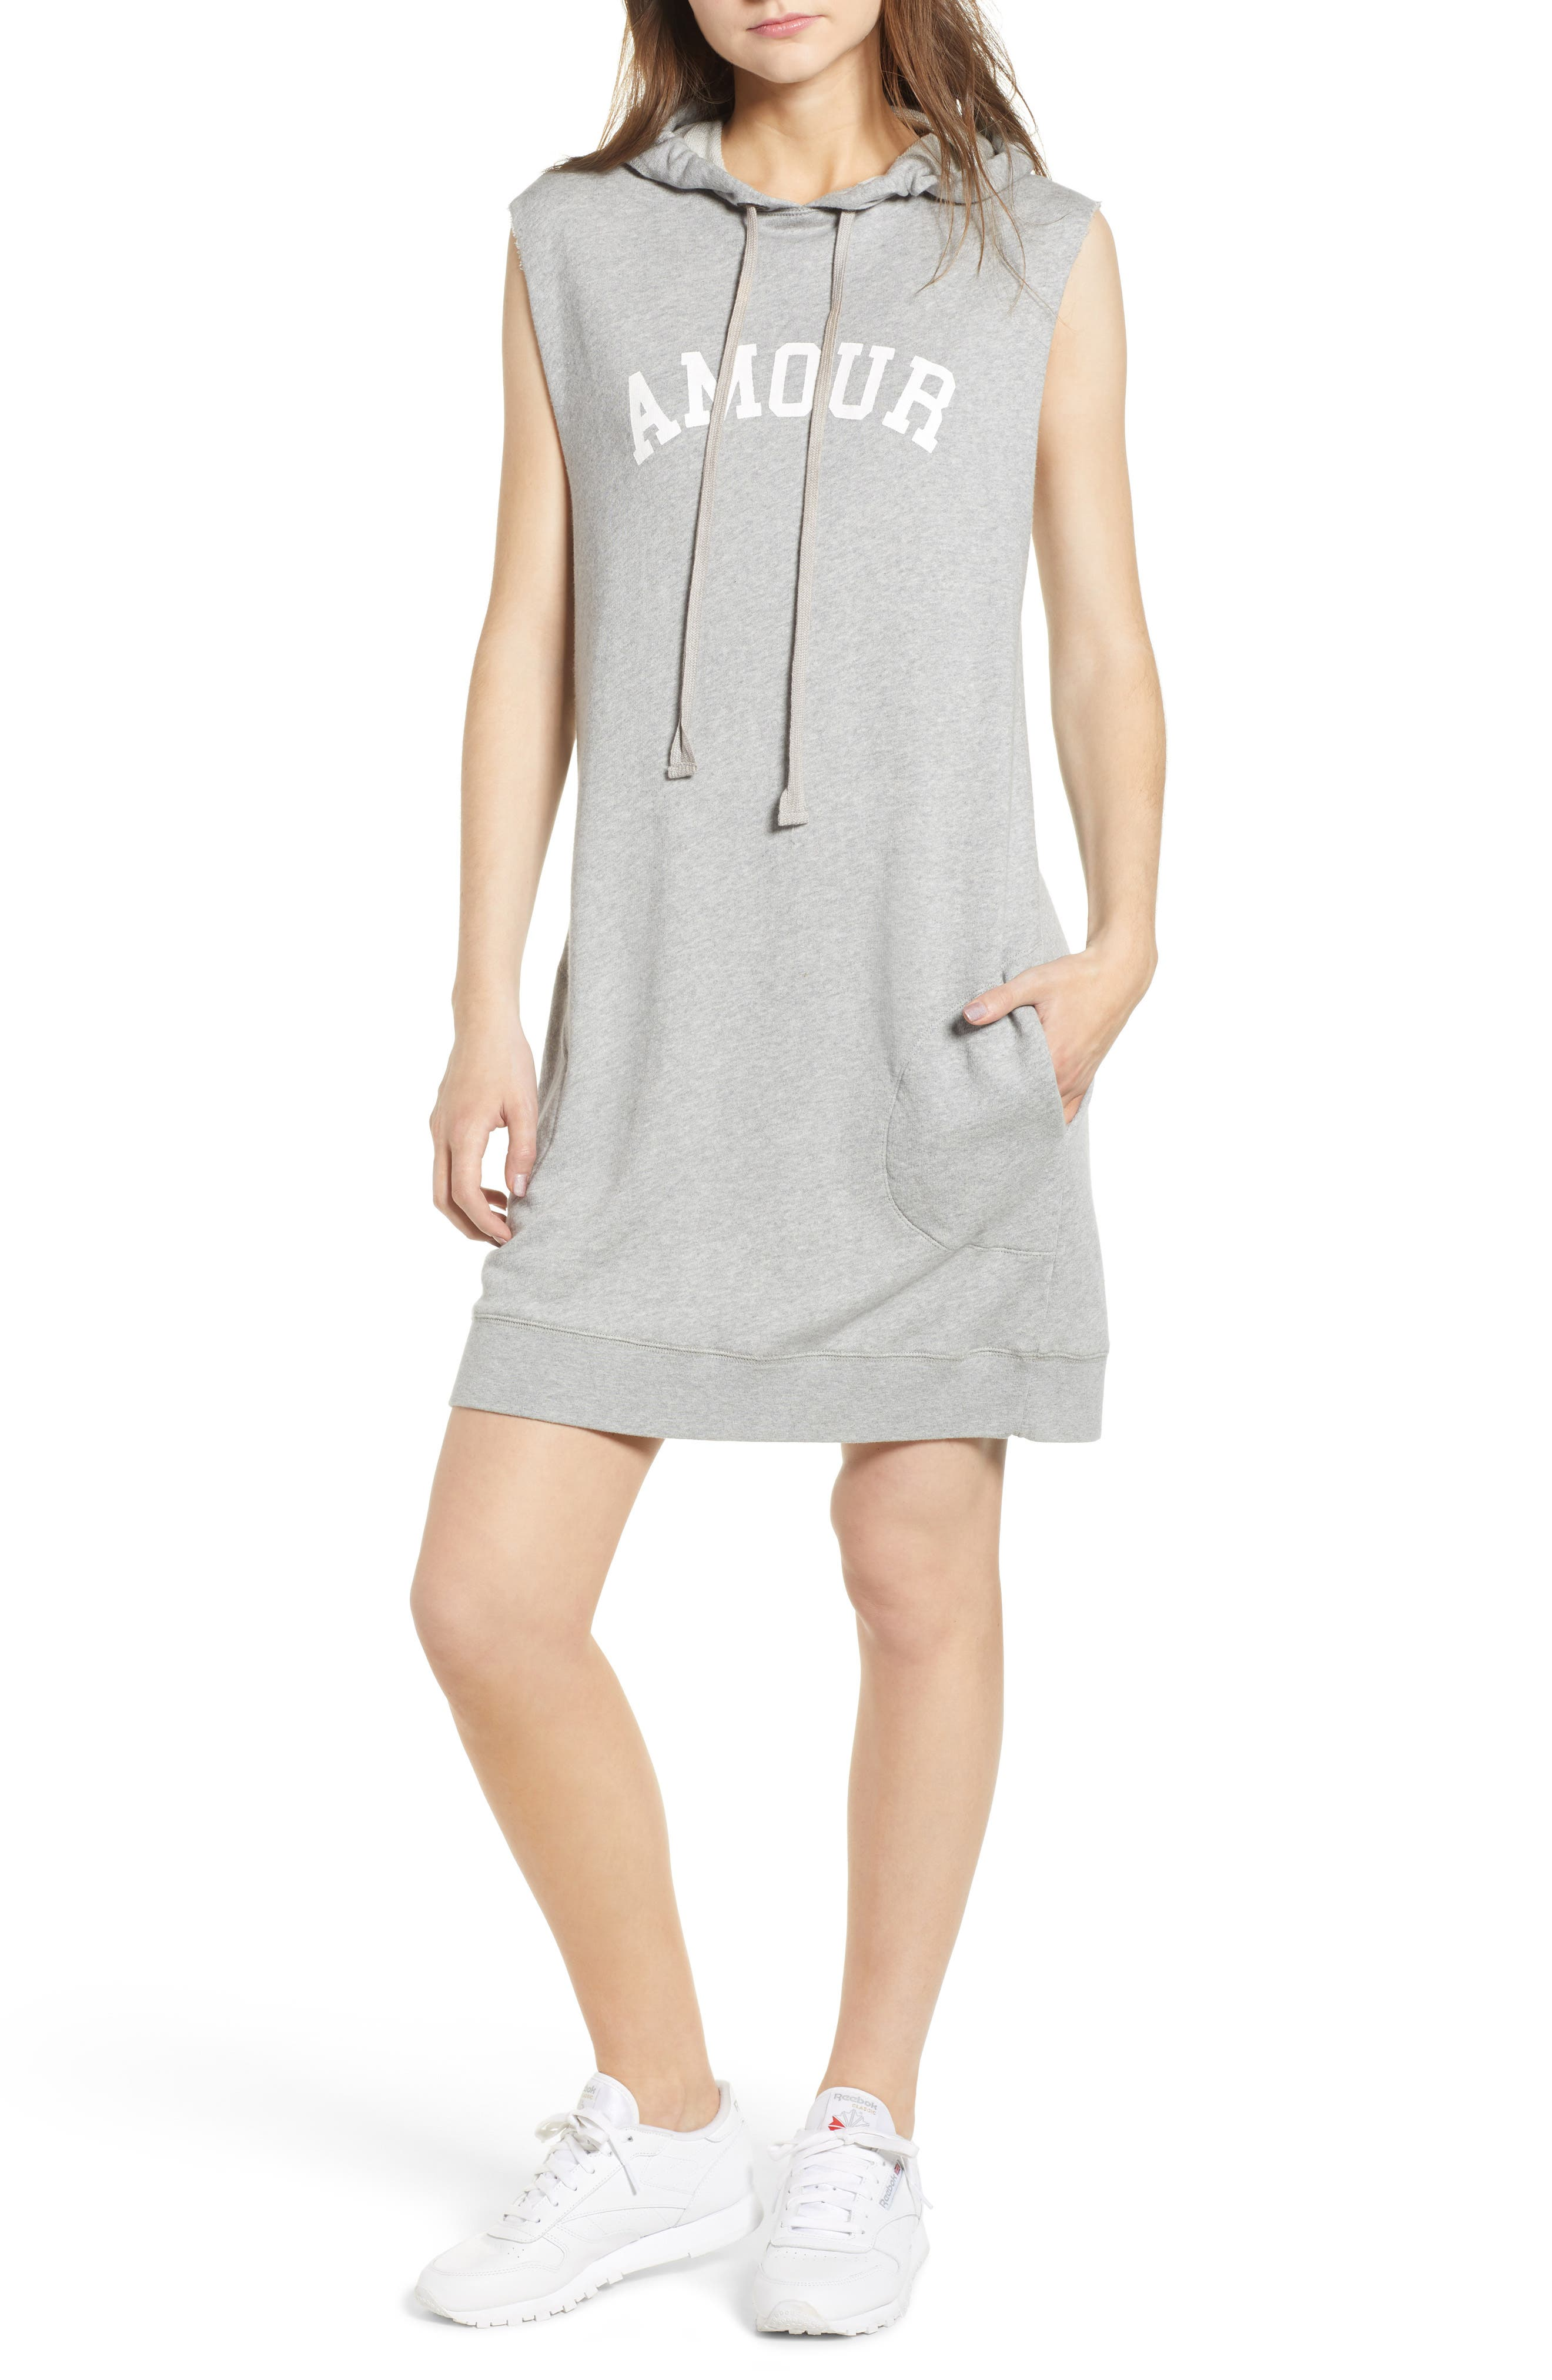 Sia Bis Hooded Dress,                         Main,                         color, Melange Grey